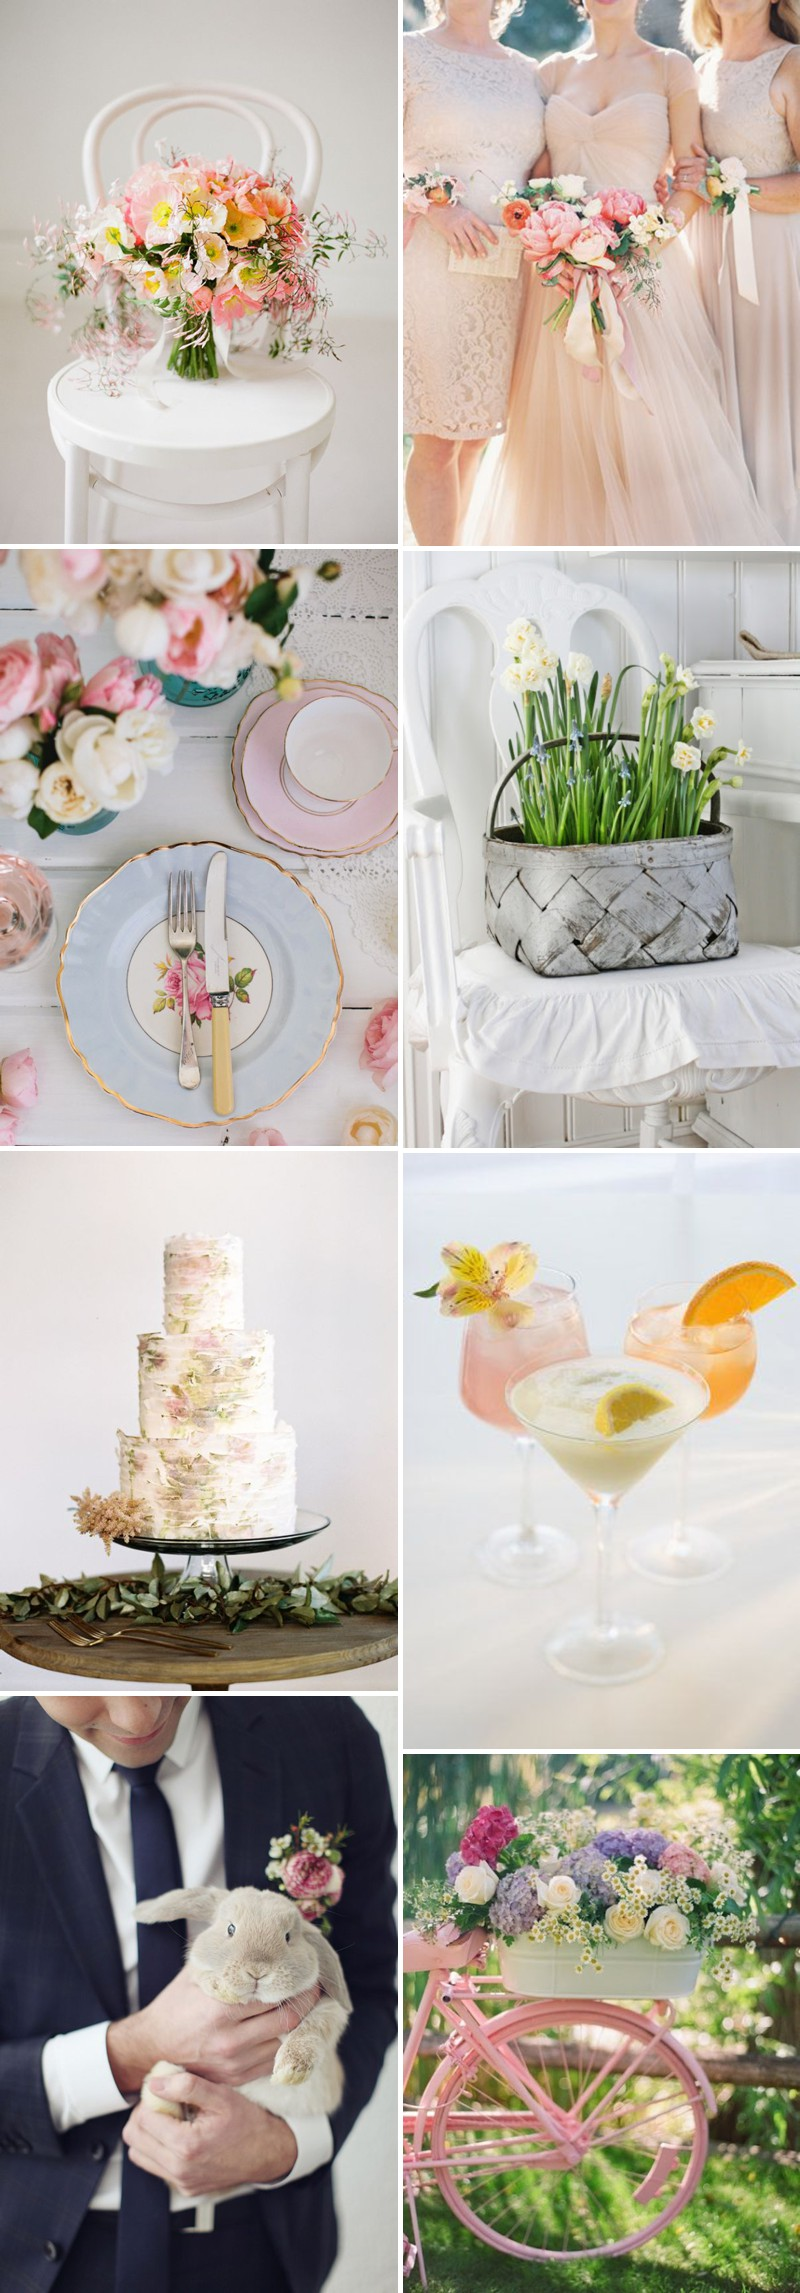 Beautiful And Unique Wedding Inspiration For Your Easter Wedding With Spring Centrepieces And Florals And Colourful Decor. 0001 An Easter Parade.